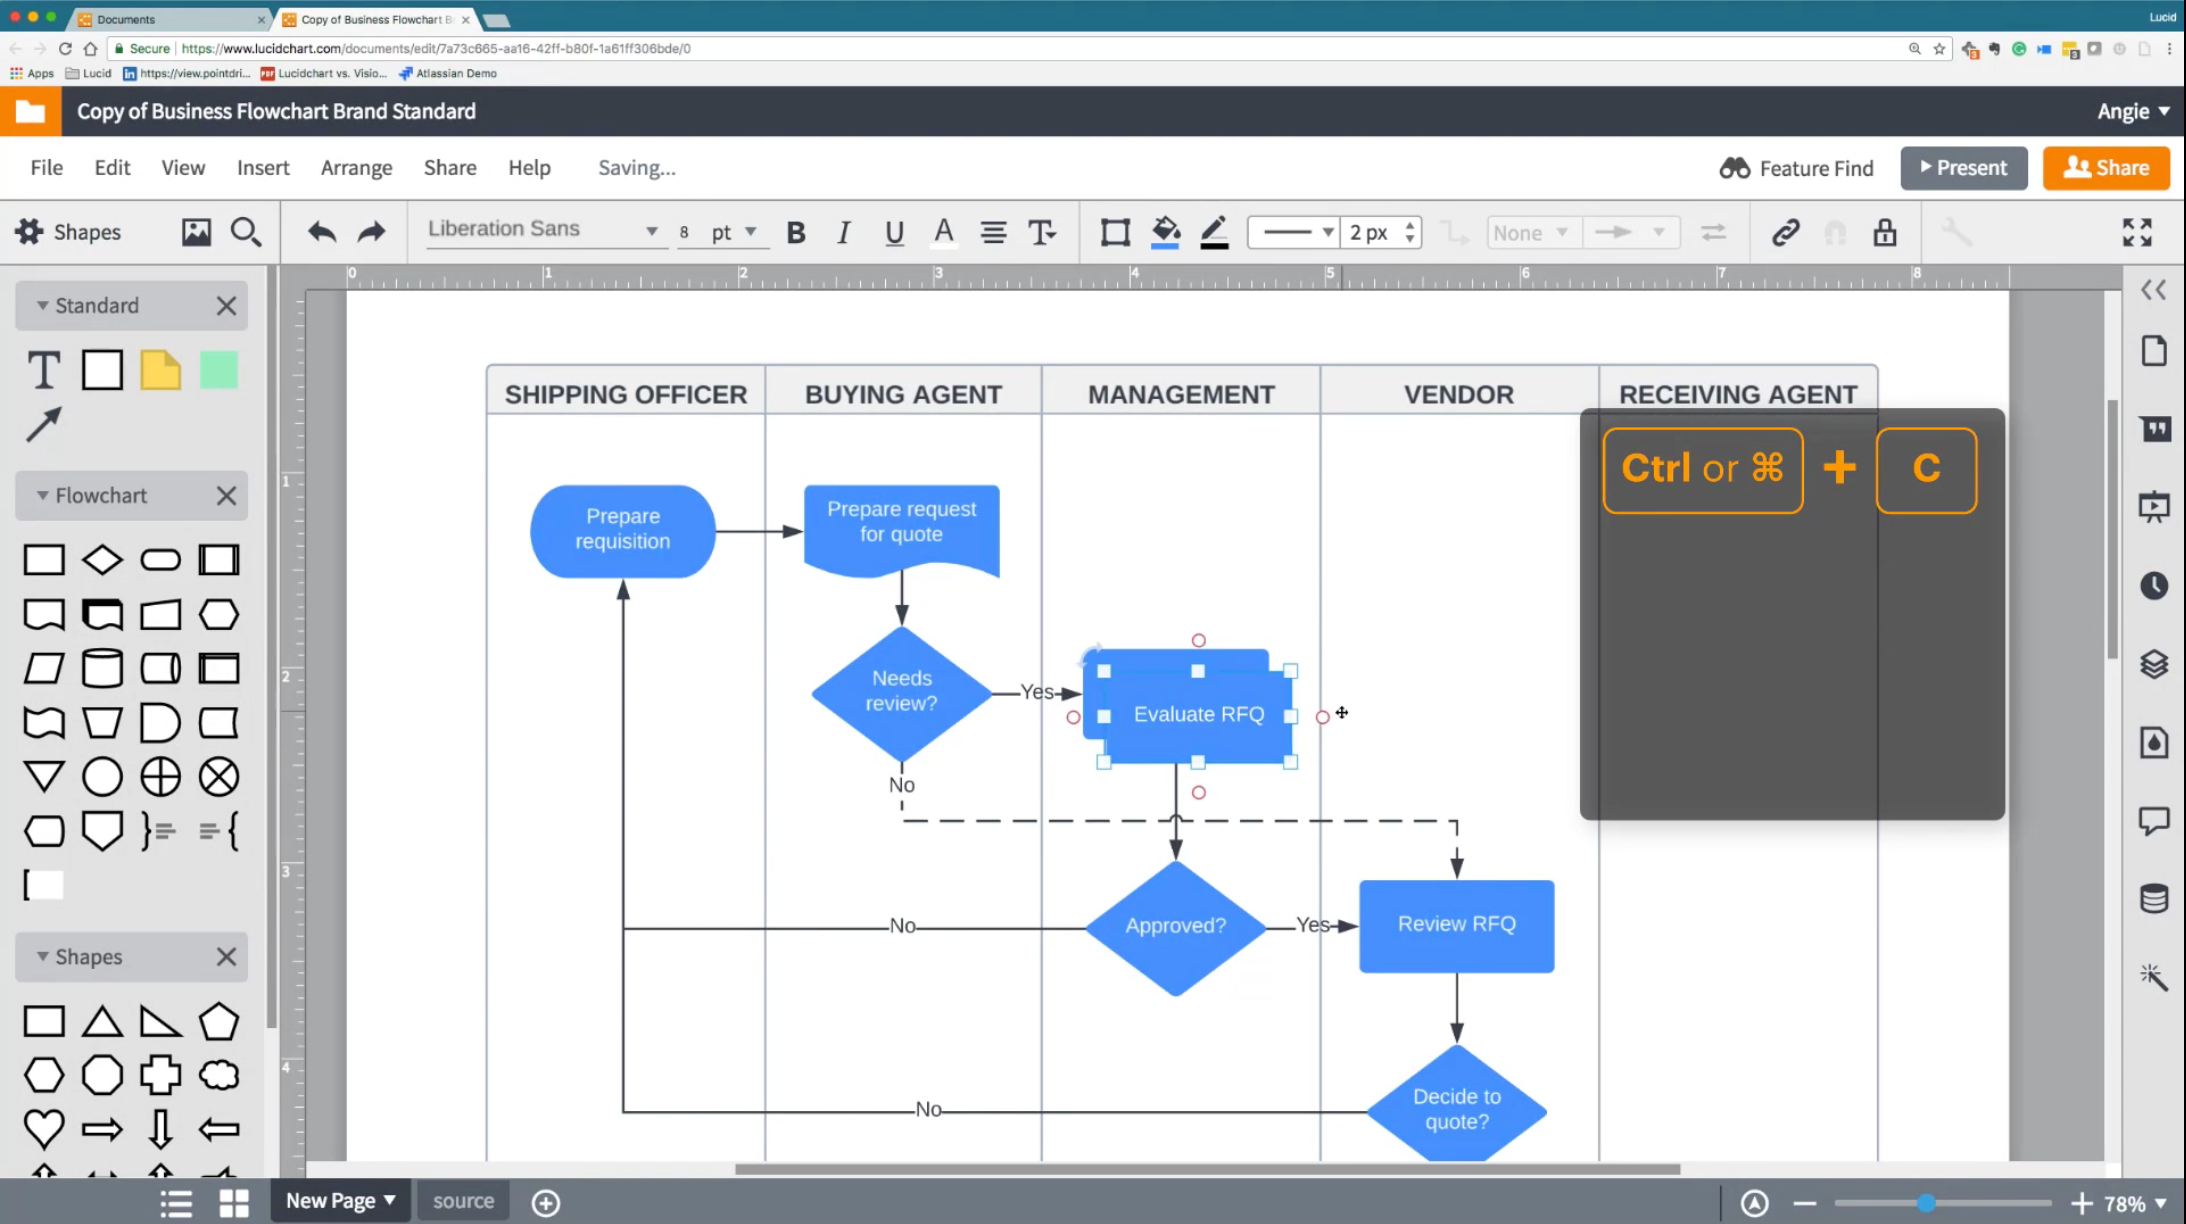 Create and edit business flowcharts